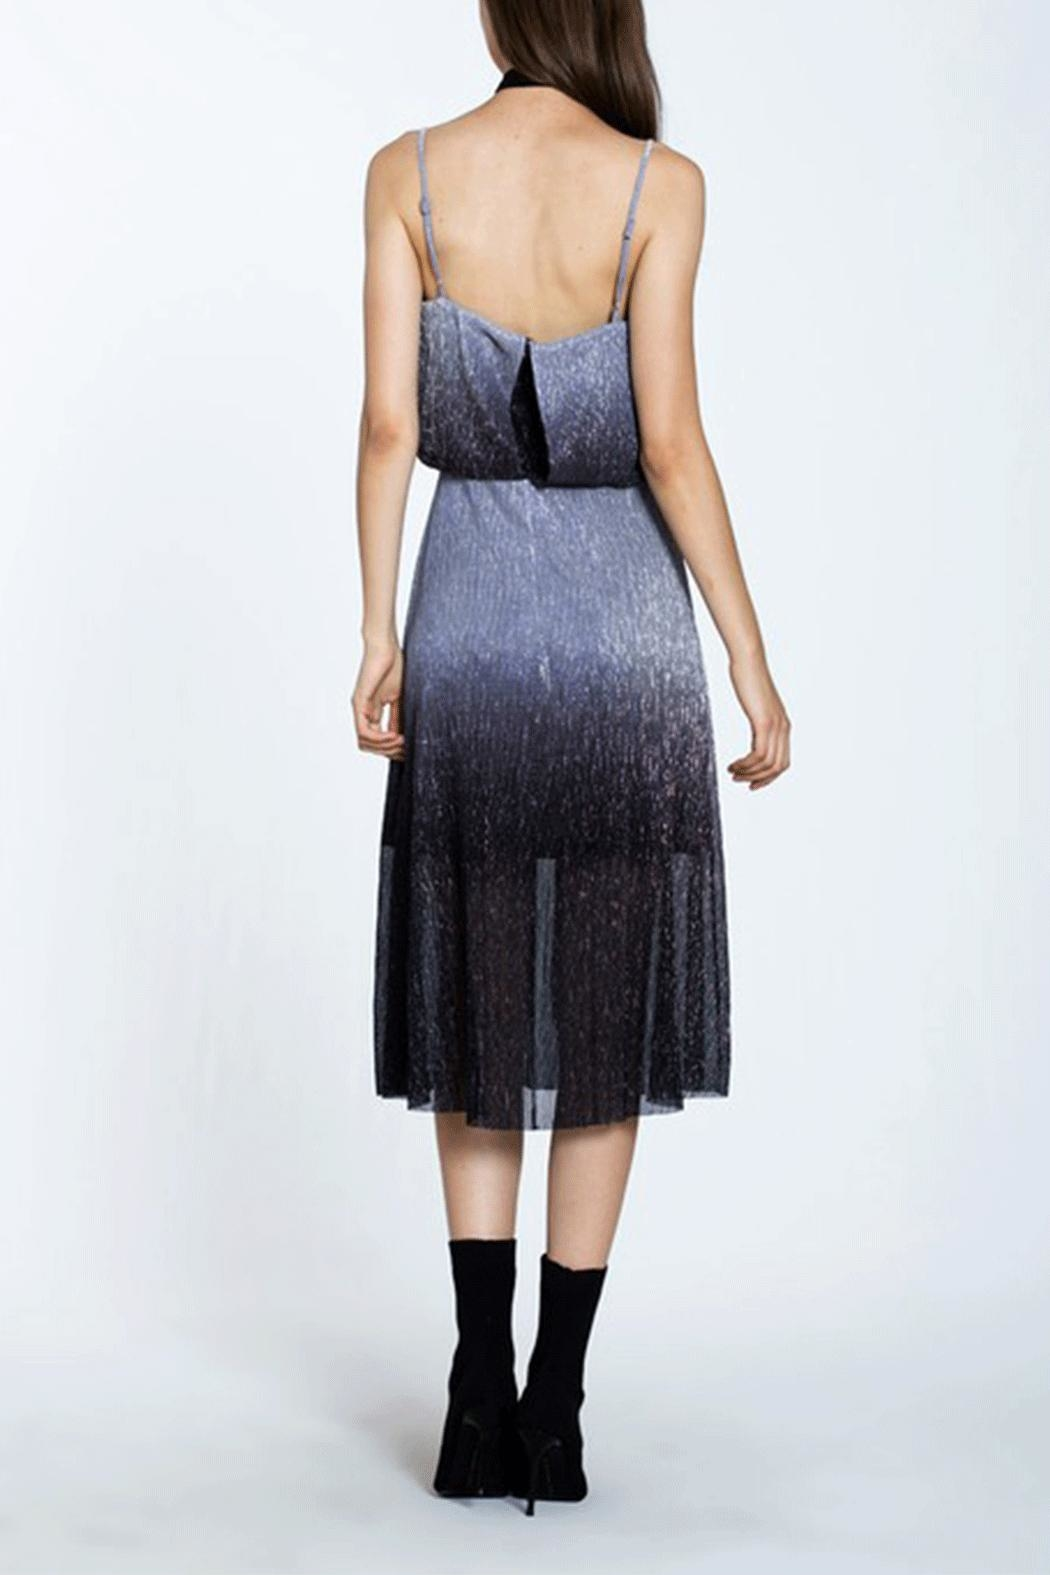 Ark & Co. Metal Pleated Dress - Side Cropped Image